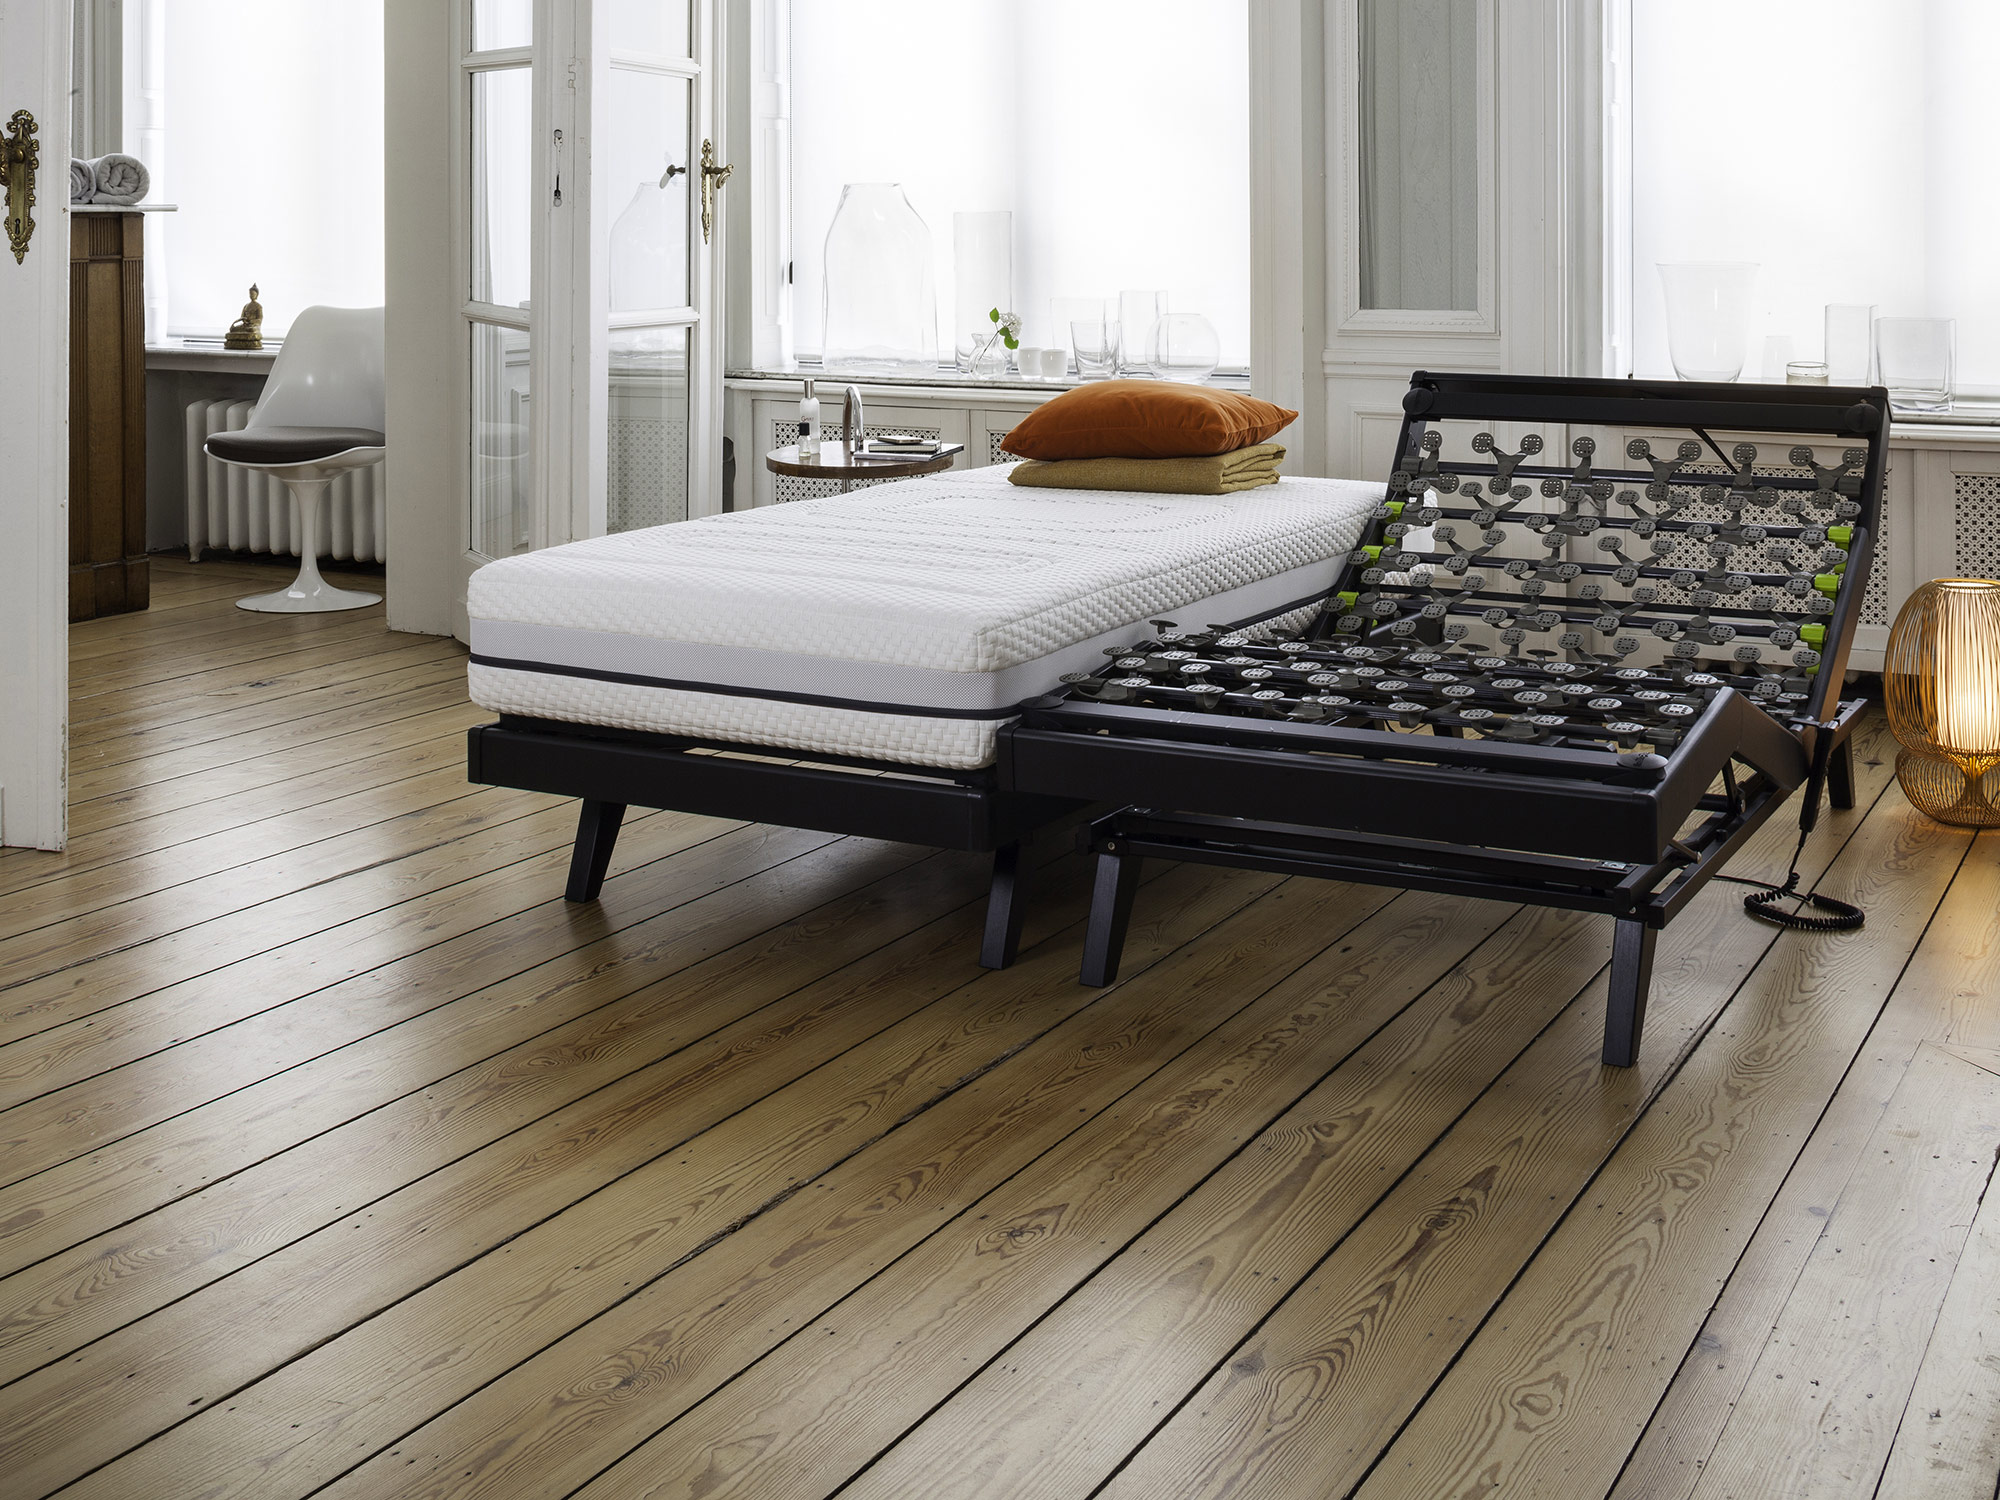 The slatted bed base